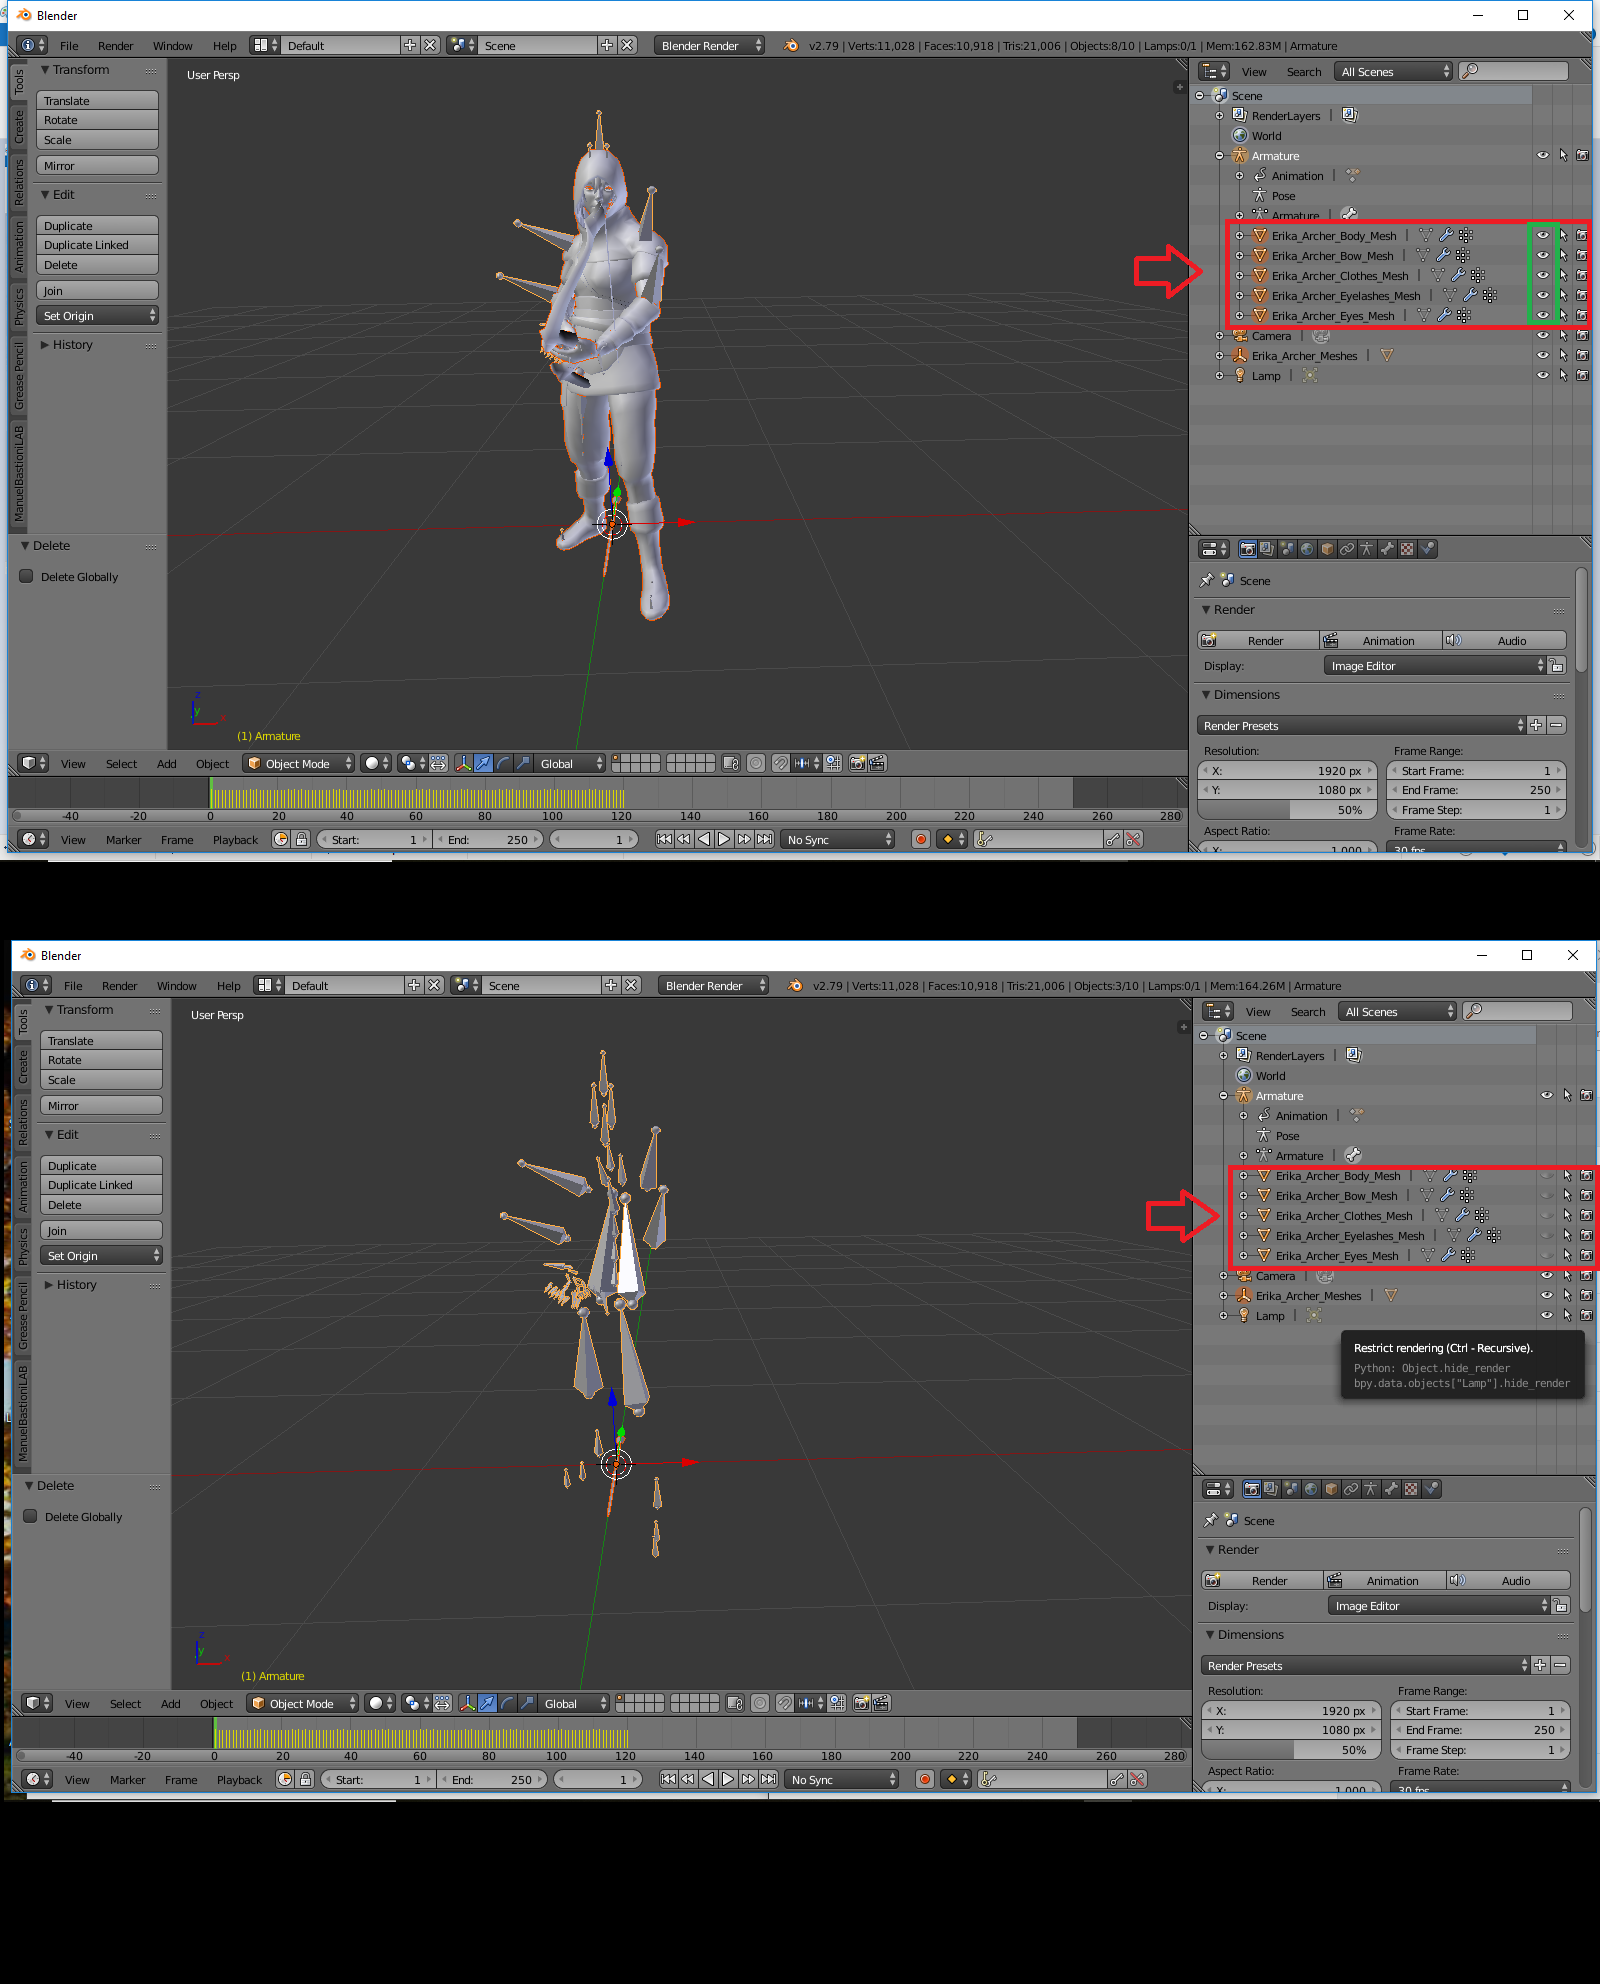 UE4 Blender Guide For Mixamo Imports Part 1 – Preparing the Models